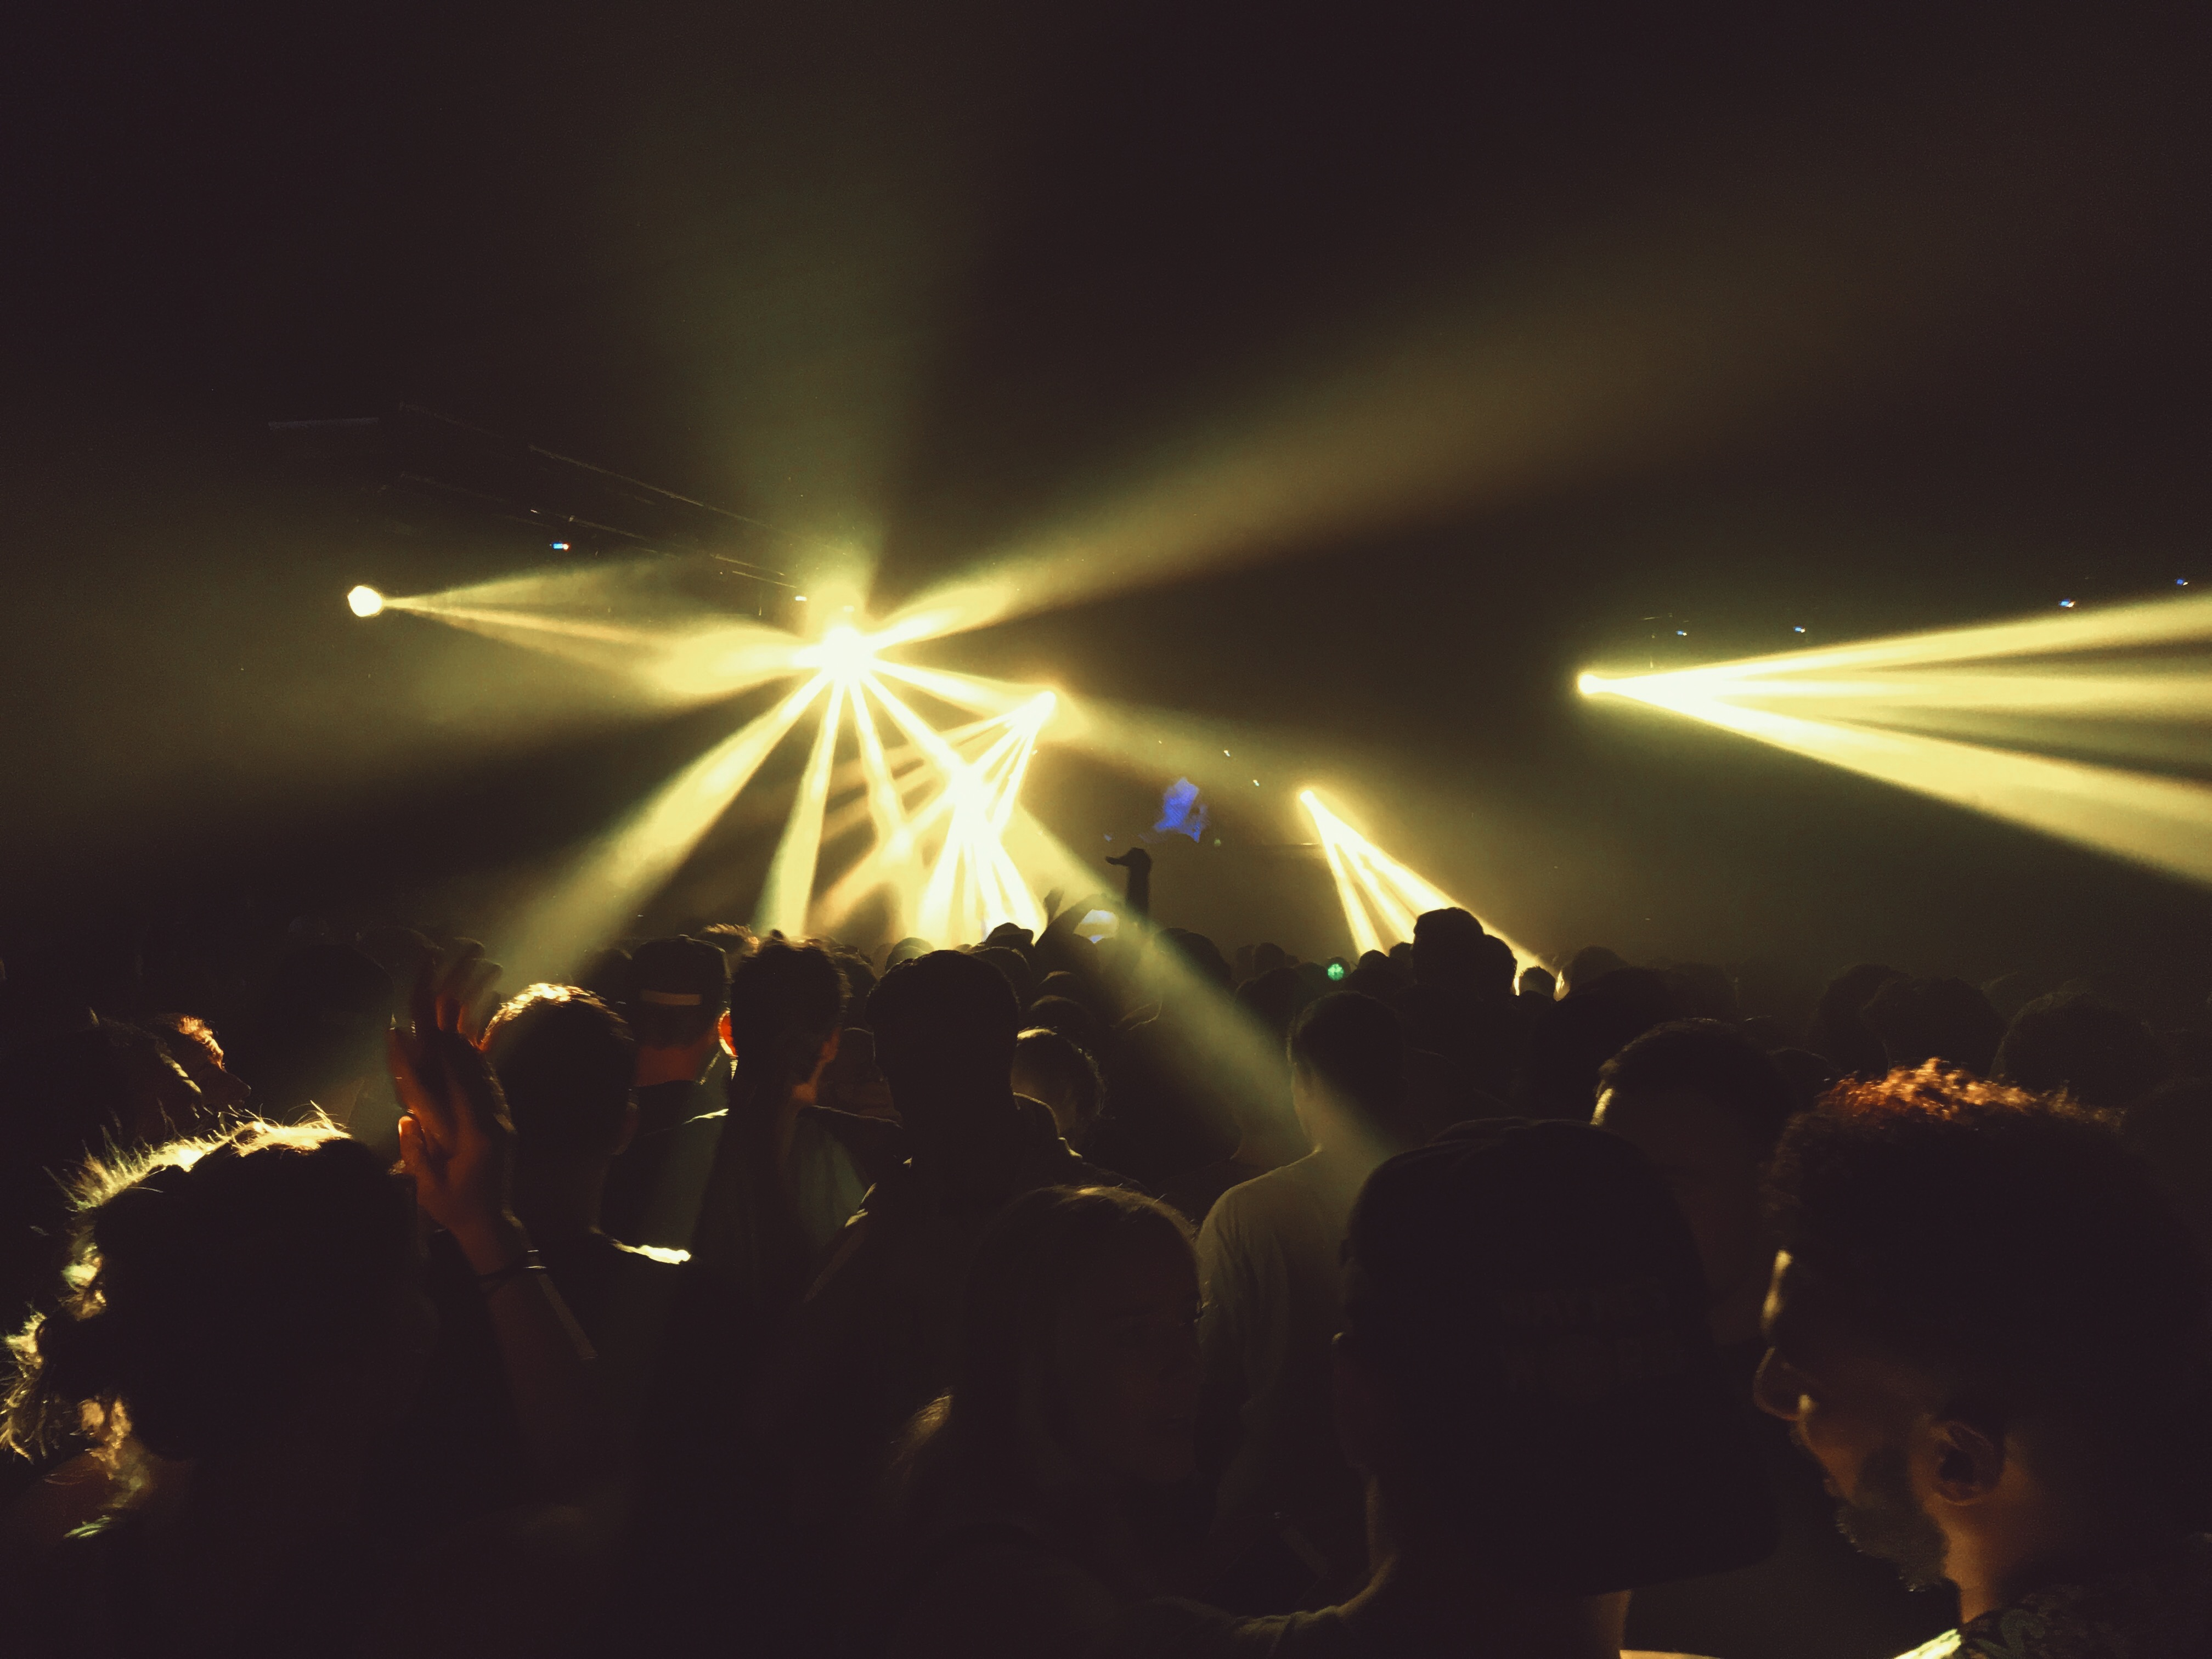 A shot of the excited crowd at B2B Metrik UK festival